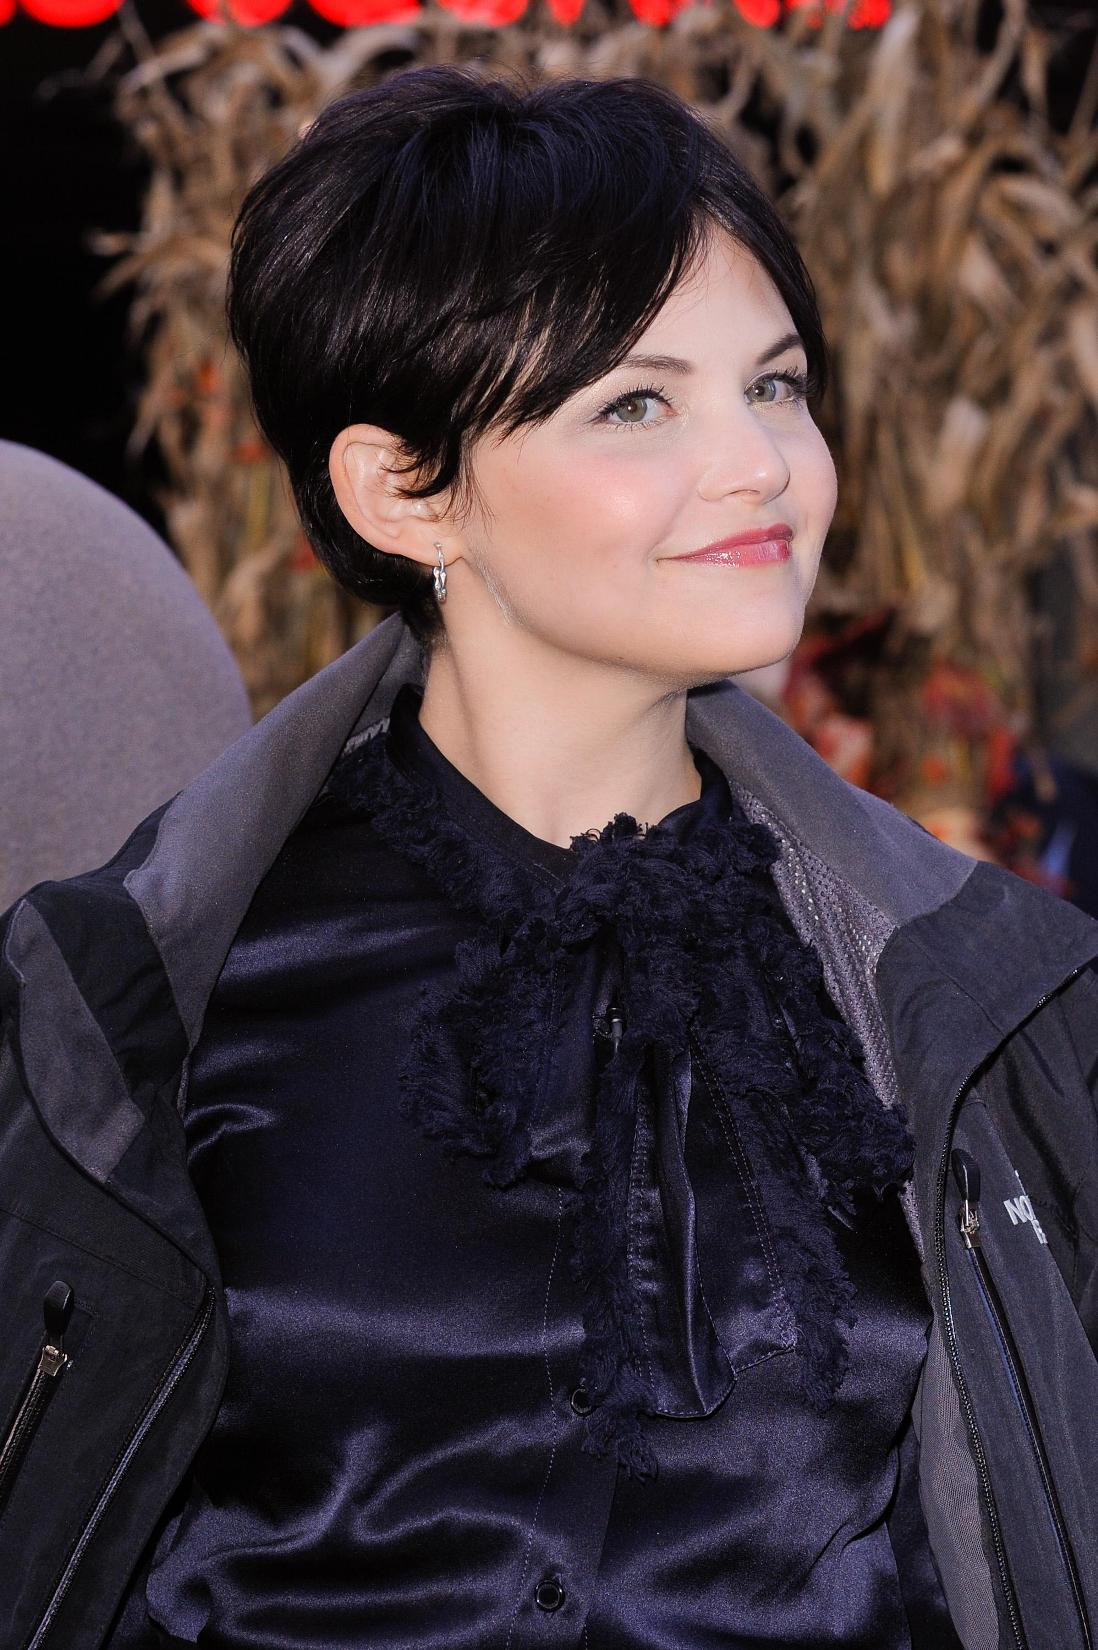 Ginnifer Goodwin - Photo Set